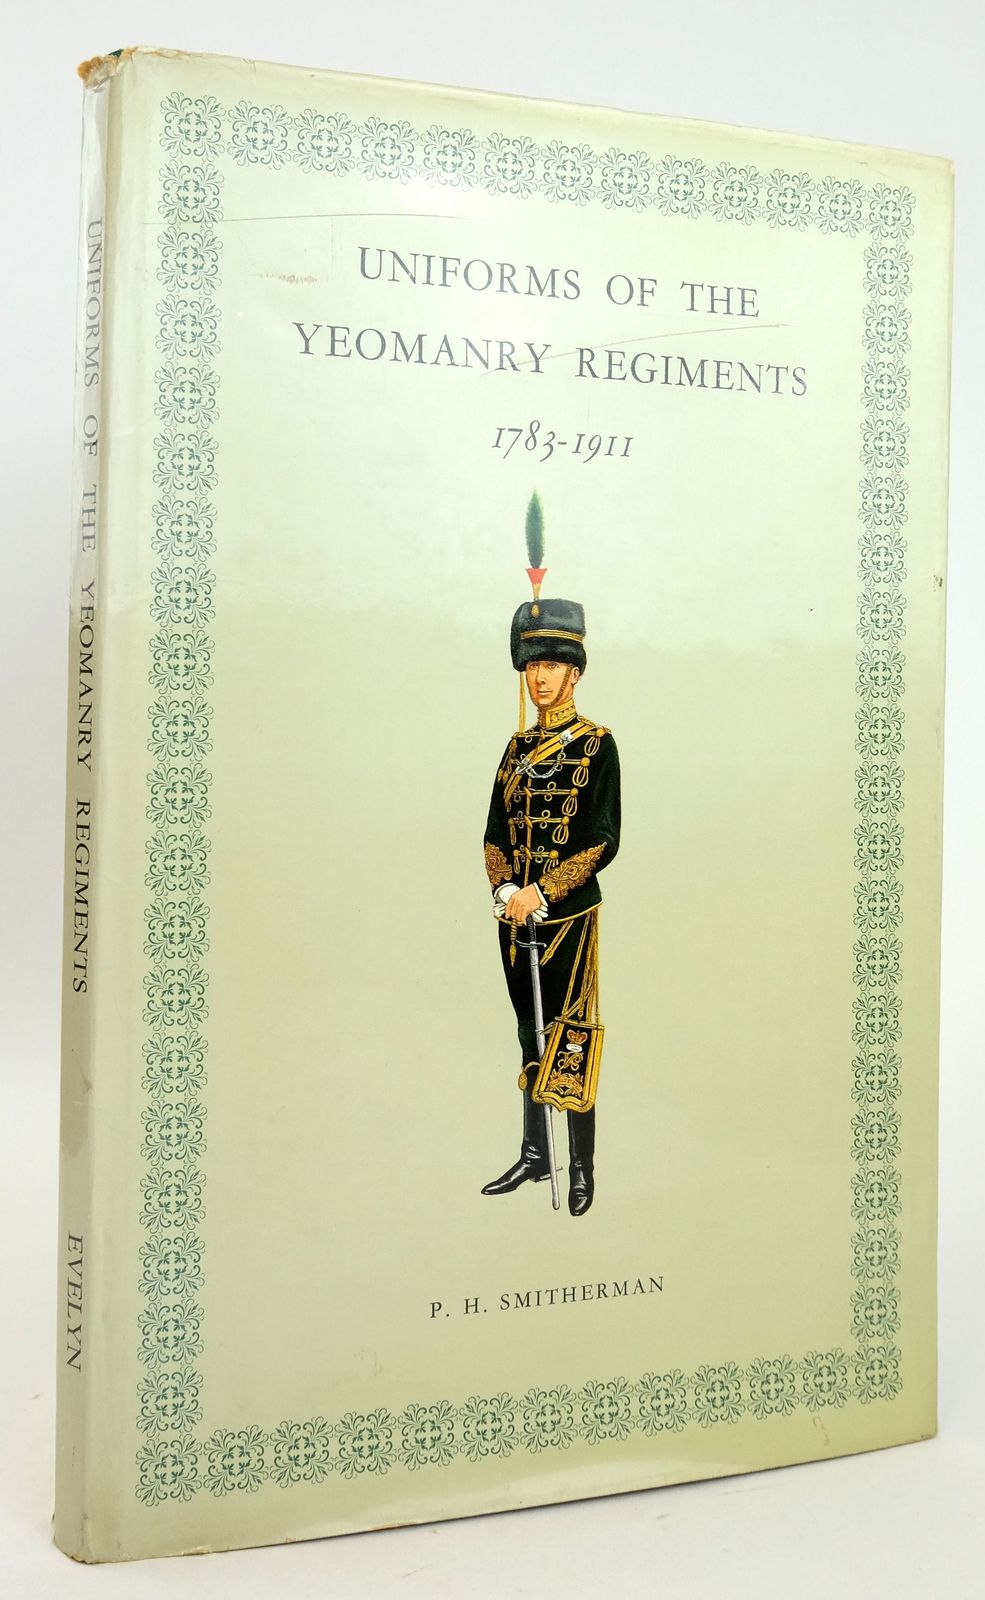 Photo of UNIFORMS OF THE YEOMANRY REGIMENTS 1783-1911 written by Smitherman, P.H. illustrated by Smitherman, P.H. published by Hugh Evelyn (STOCK CODE: 1819979)  for sale by Stella & Rose's Books